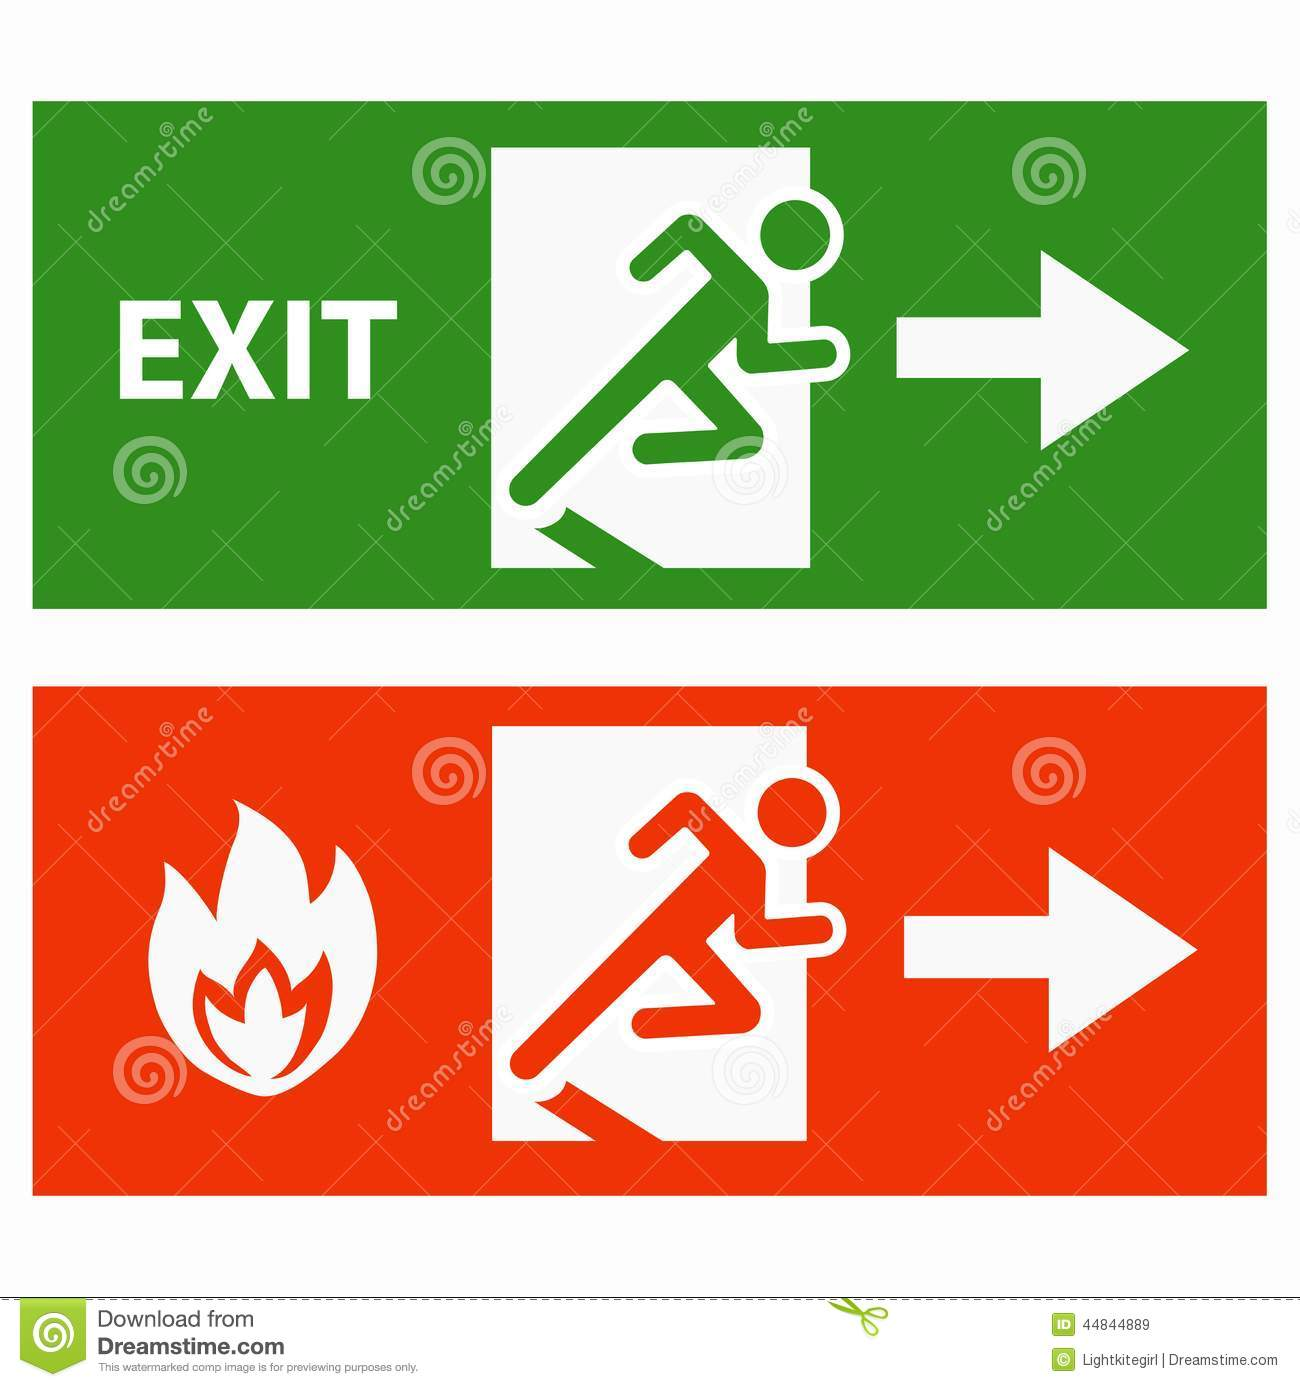 Raw Video Deadly Honolulu High Rise Fire in addition Photoelectric Smoke Detector additionally Fire Alarm Cable 16 Awg 2 Cond Wire Unshielded 1000 Ft Fplr Cl2r likewise Fire Curtain moreover Stock Illustration Set Fire Causes Infographic Fighting Design Concept Elements Flat Design Vector Eps Illustration Image73863652. on fire alarm audio